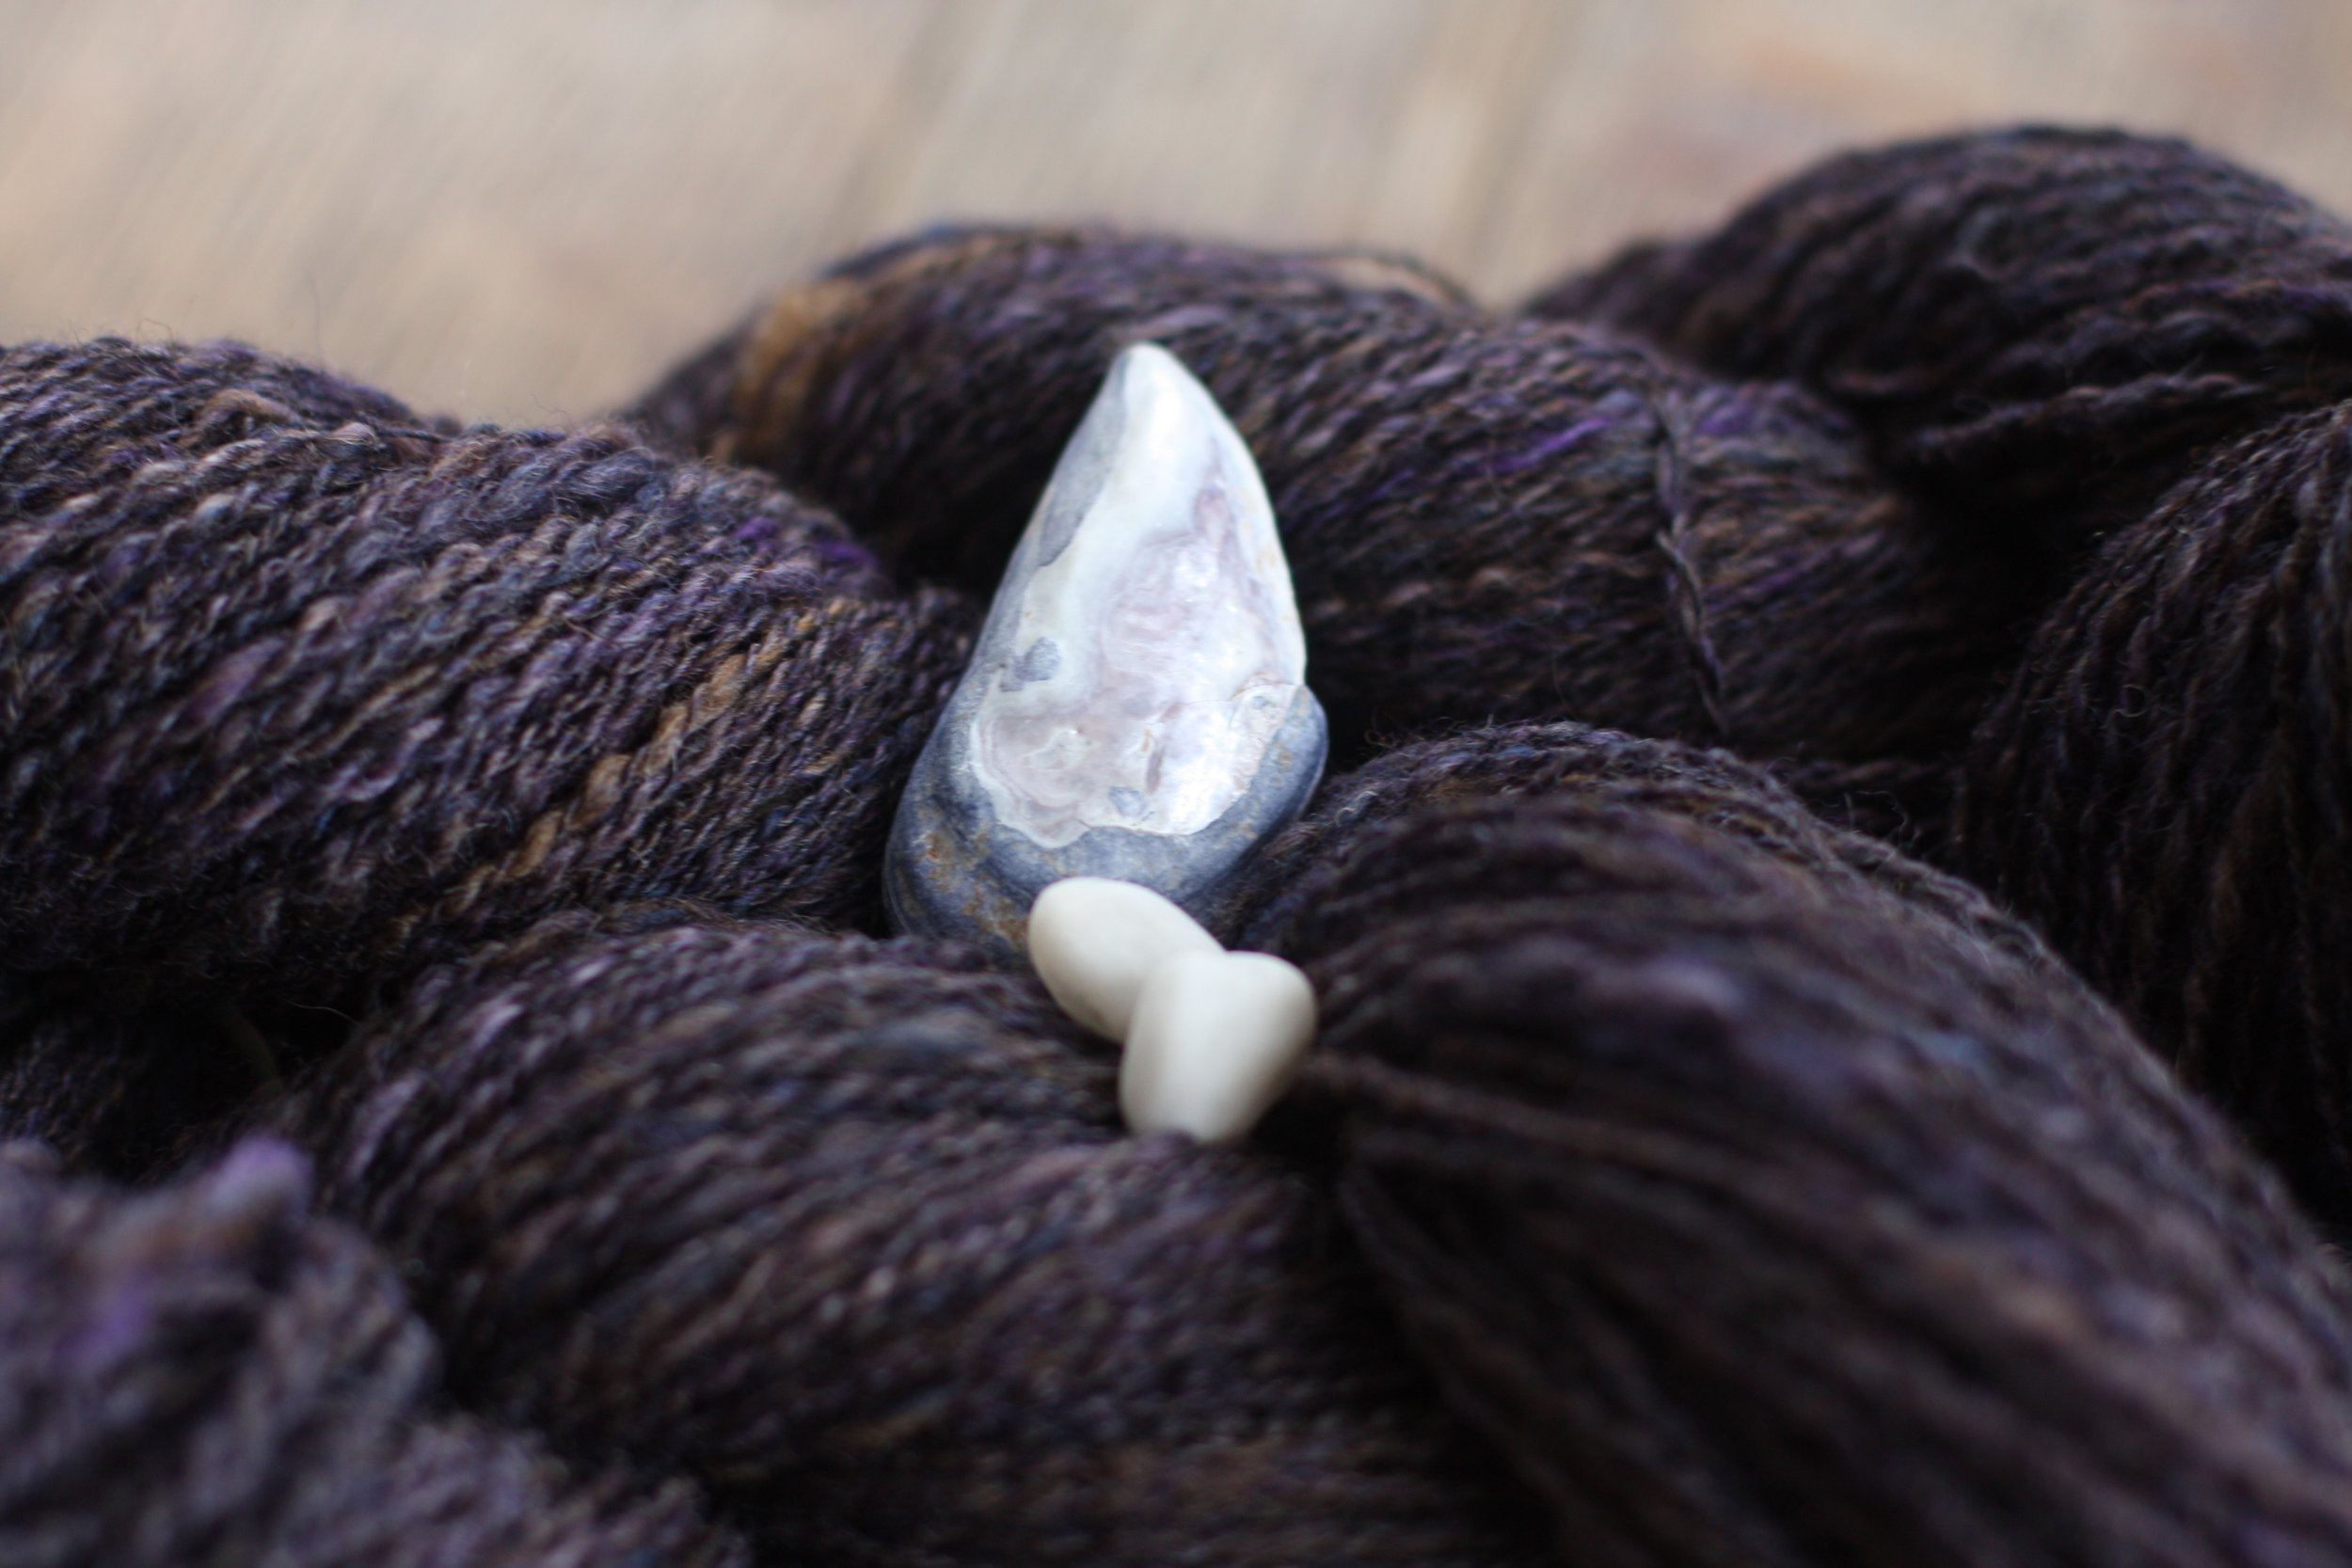 Handspun yarn featuring tones of brown and purple and blue poses with a mussel shell from the Maine coast and two quartz beach rocks | 14 Mile Farm Handweaving and Homesteading